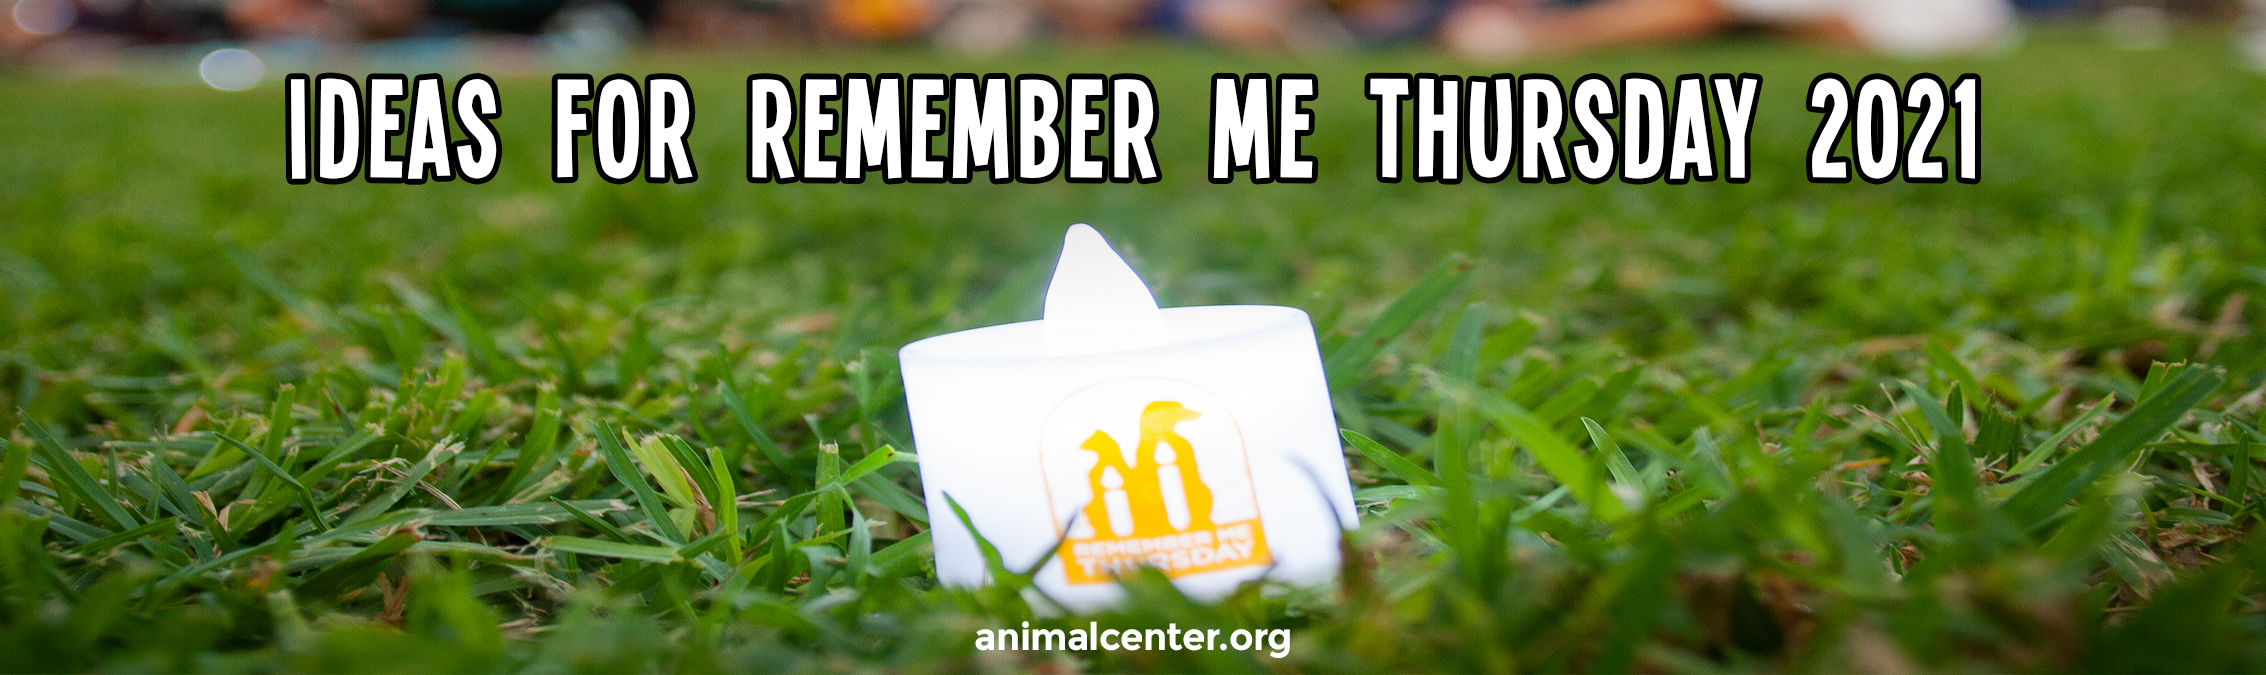 Ideas on how to Participate in #RememberMeThursday for 2021